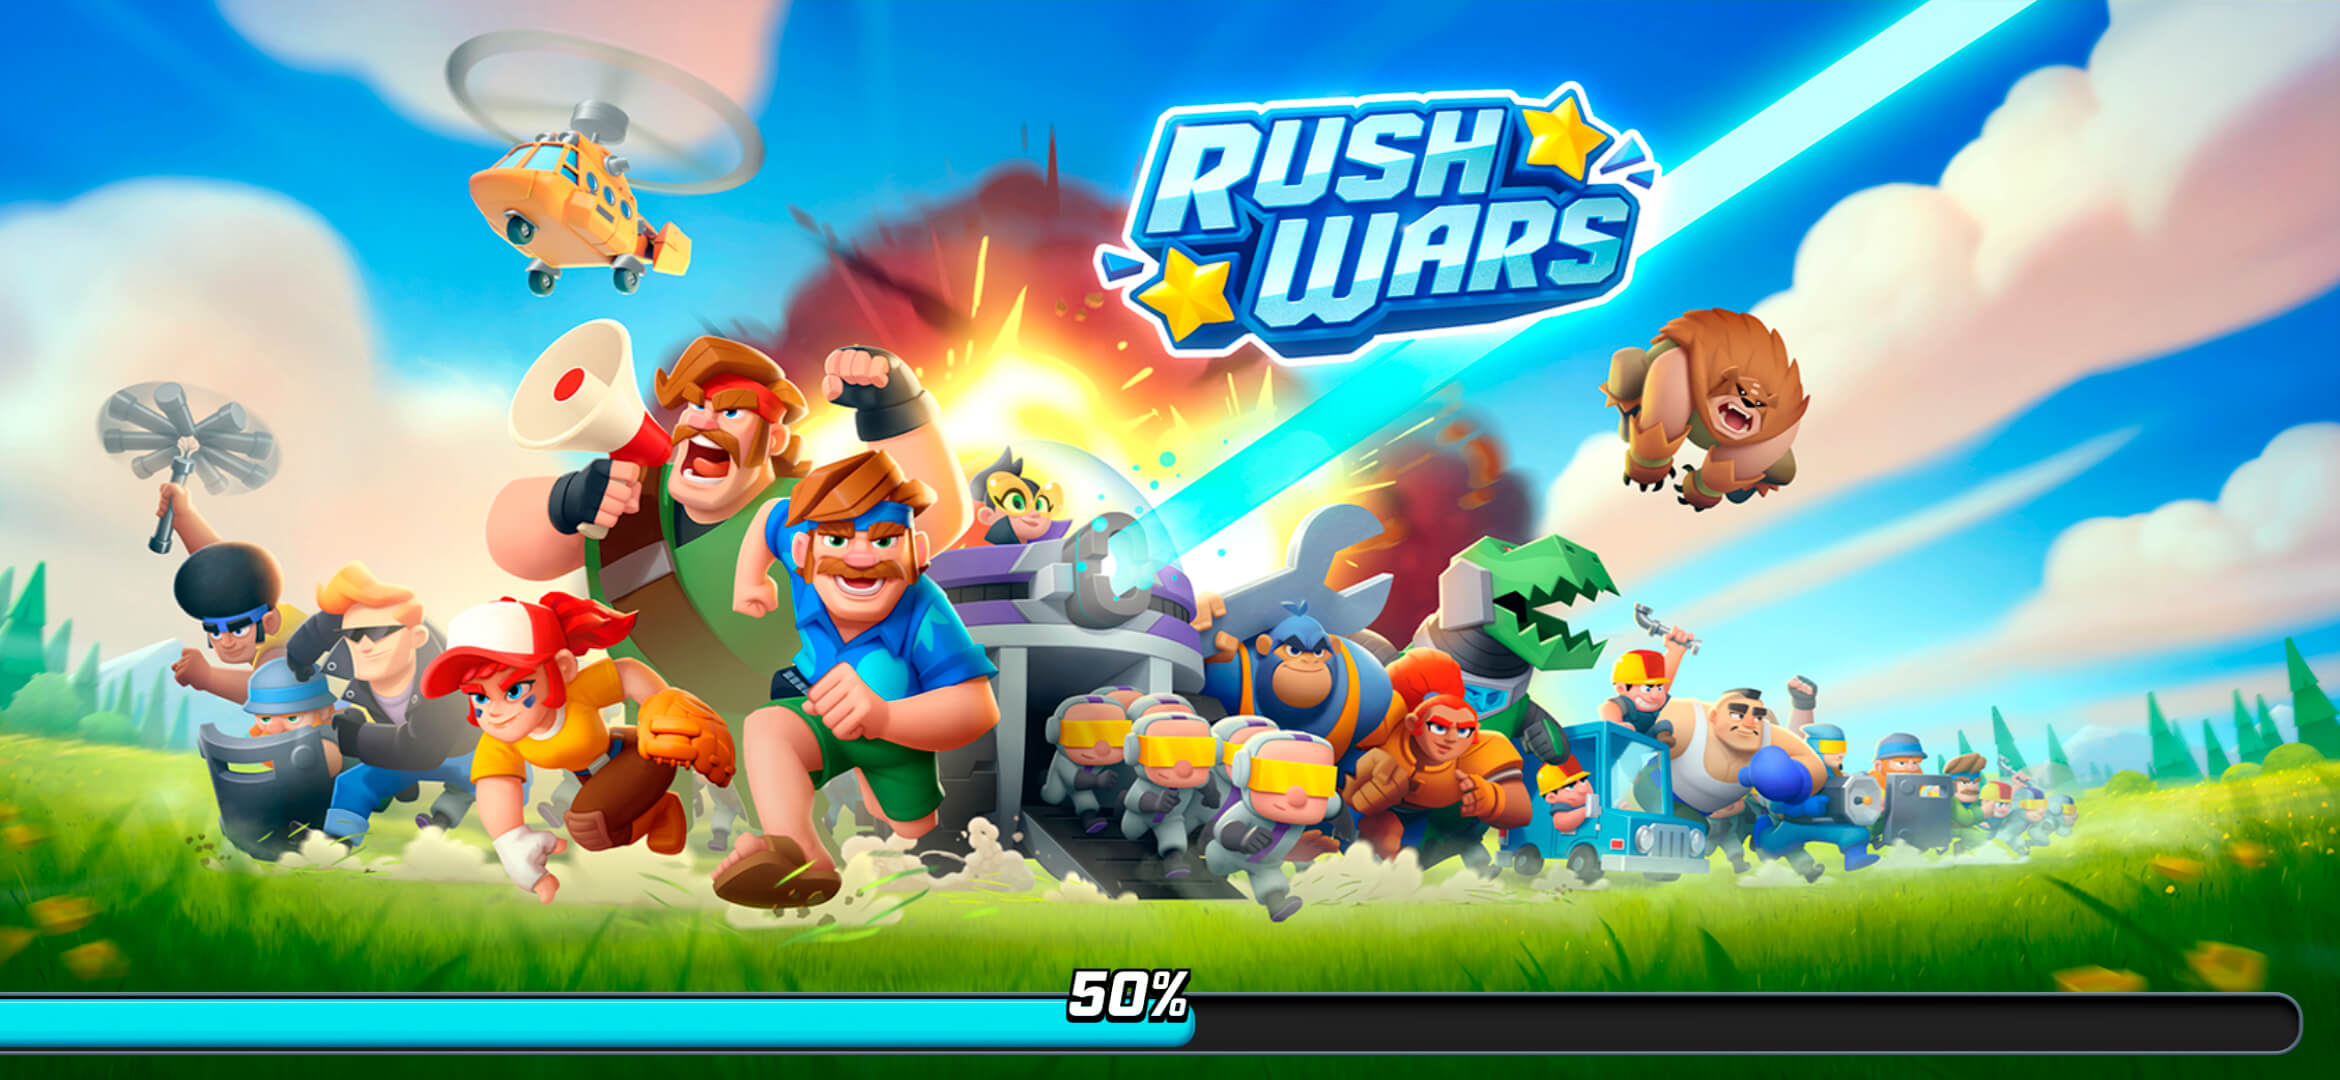 "Rush Wars ""width ="" 2340 ""height ="" 1080 ""srcset ="" https://tutomoviles.com/wp-content/uploads/2019/08/1566862472_202_so that-You-can-oyun-Supercell-baru.jpg 2340w, https: //www.proandroid .com / wp-content / upload / 2019/08 / qamış-müharibələr-300x138.jpg 300w, https://www.proandroid.com/wp-content/uploads/2019/08/ qamış -müharibələr-768x354.jpg 768w, https://www.proandroid.com/wp-content/uploads/2019/08/rush-wars-1024x473.jpg 1024w, https://www.proandroid.com/wp- content / yükləmələr / 2019/08 08 qamış-müharibələr-624x288.jpg 624w ""size ="" (maksimum eni: 2340px) 100vw, 2340px"